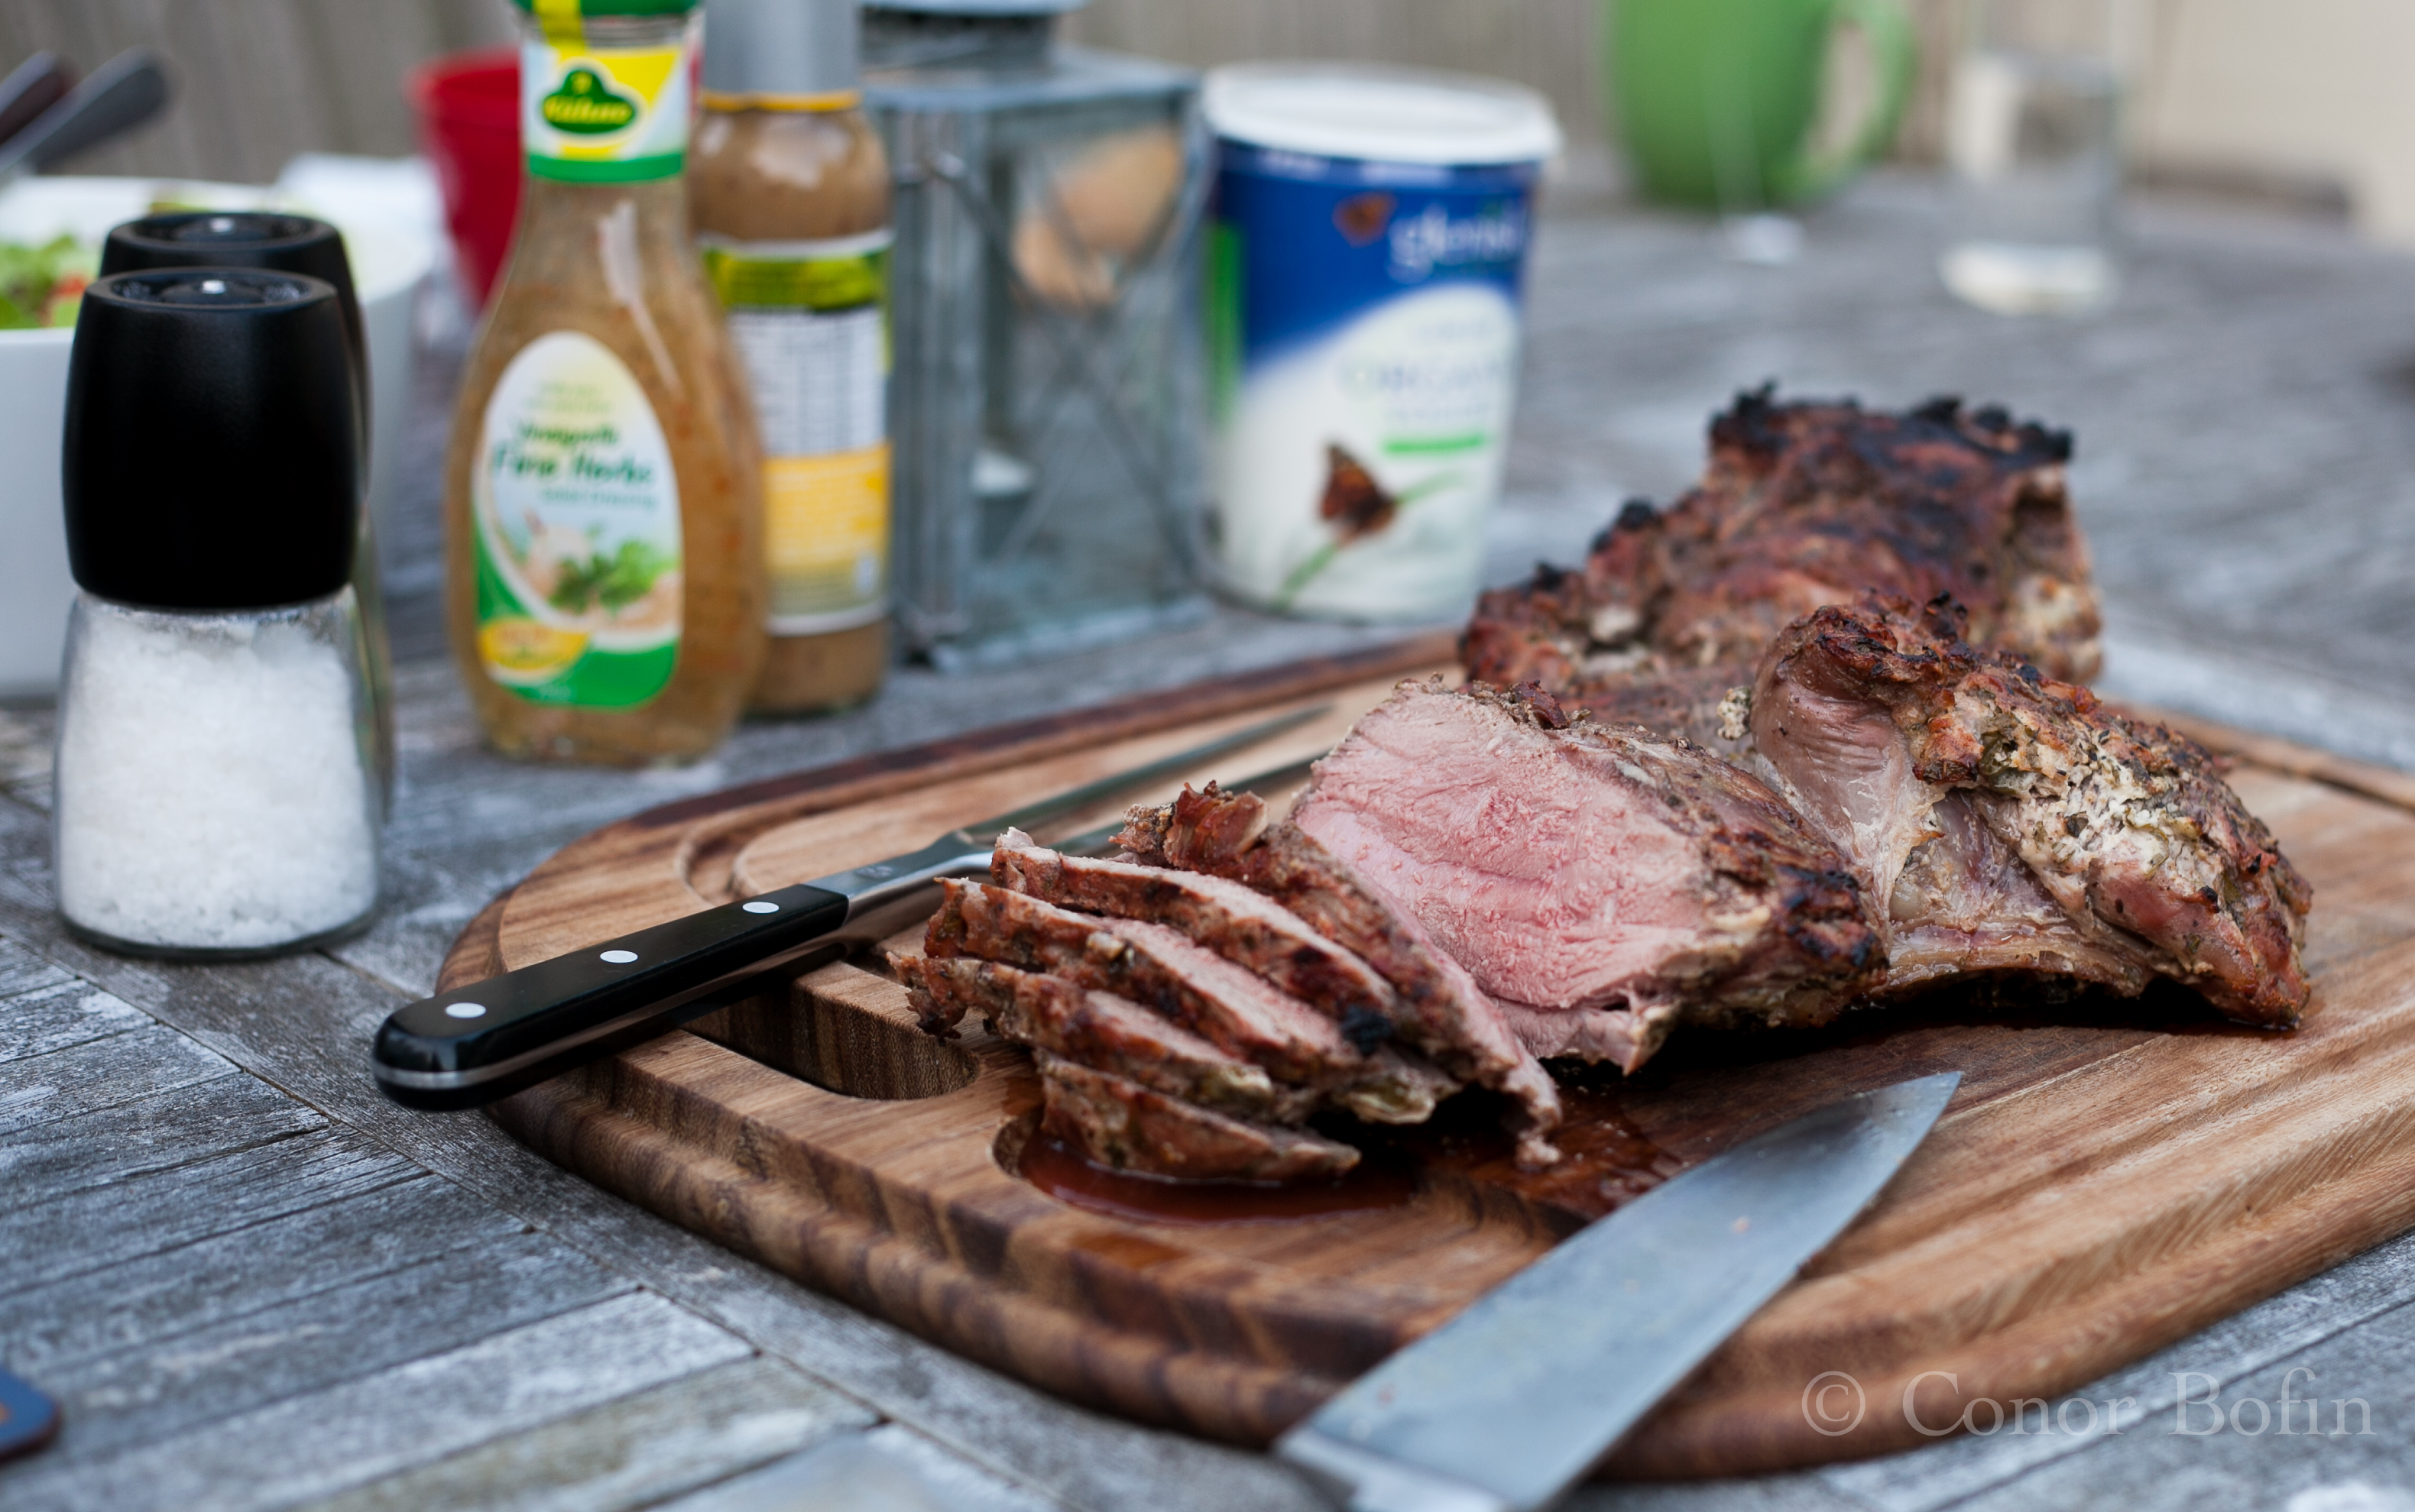 We are in the pink with this. The marinade added a beautiful layer of flavours to the lamb.